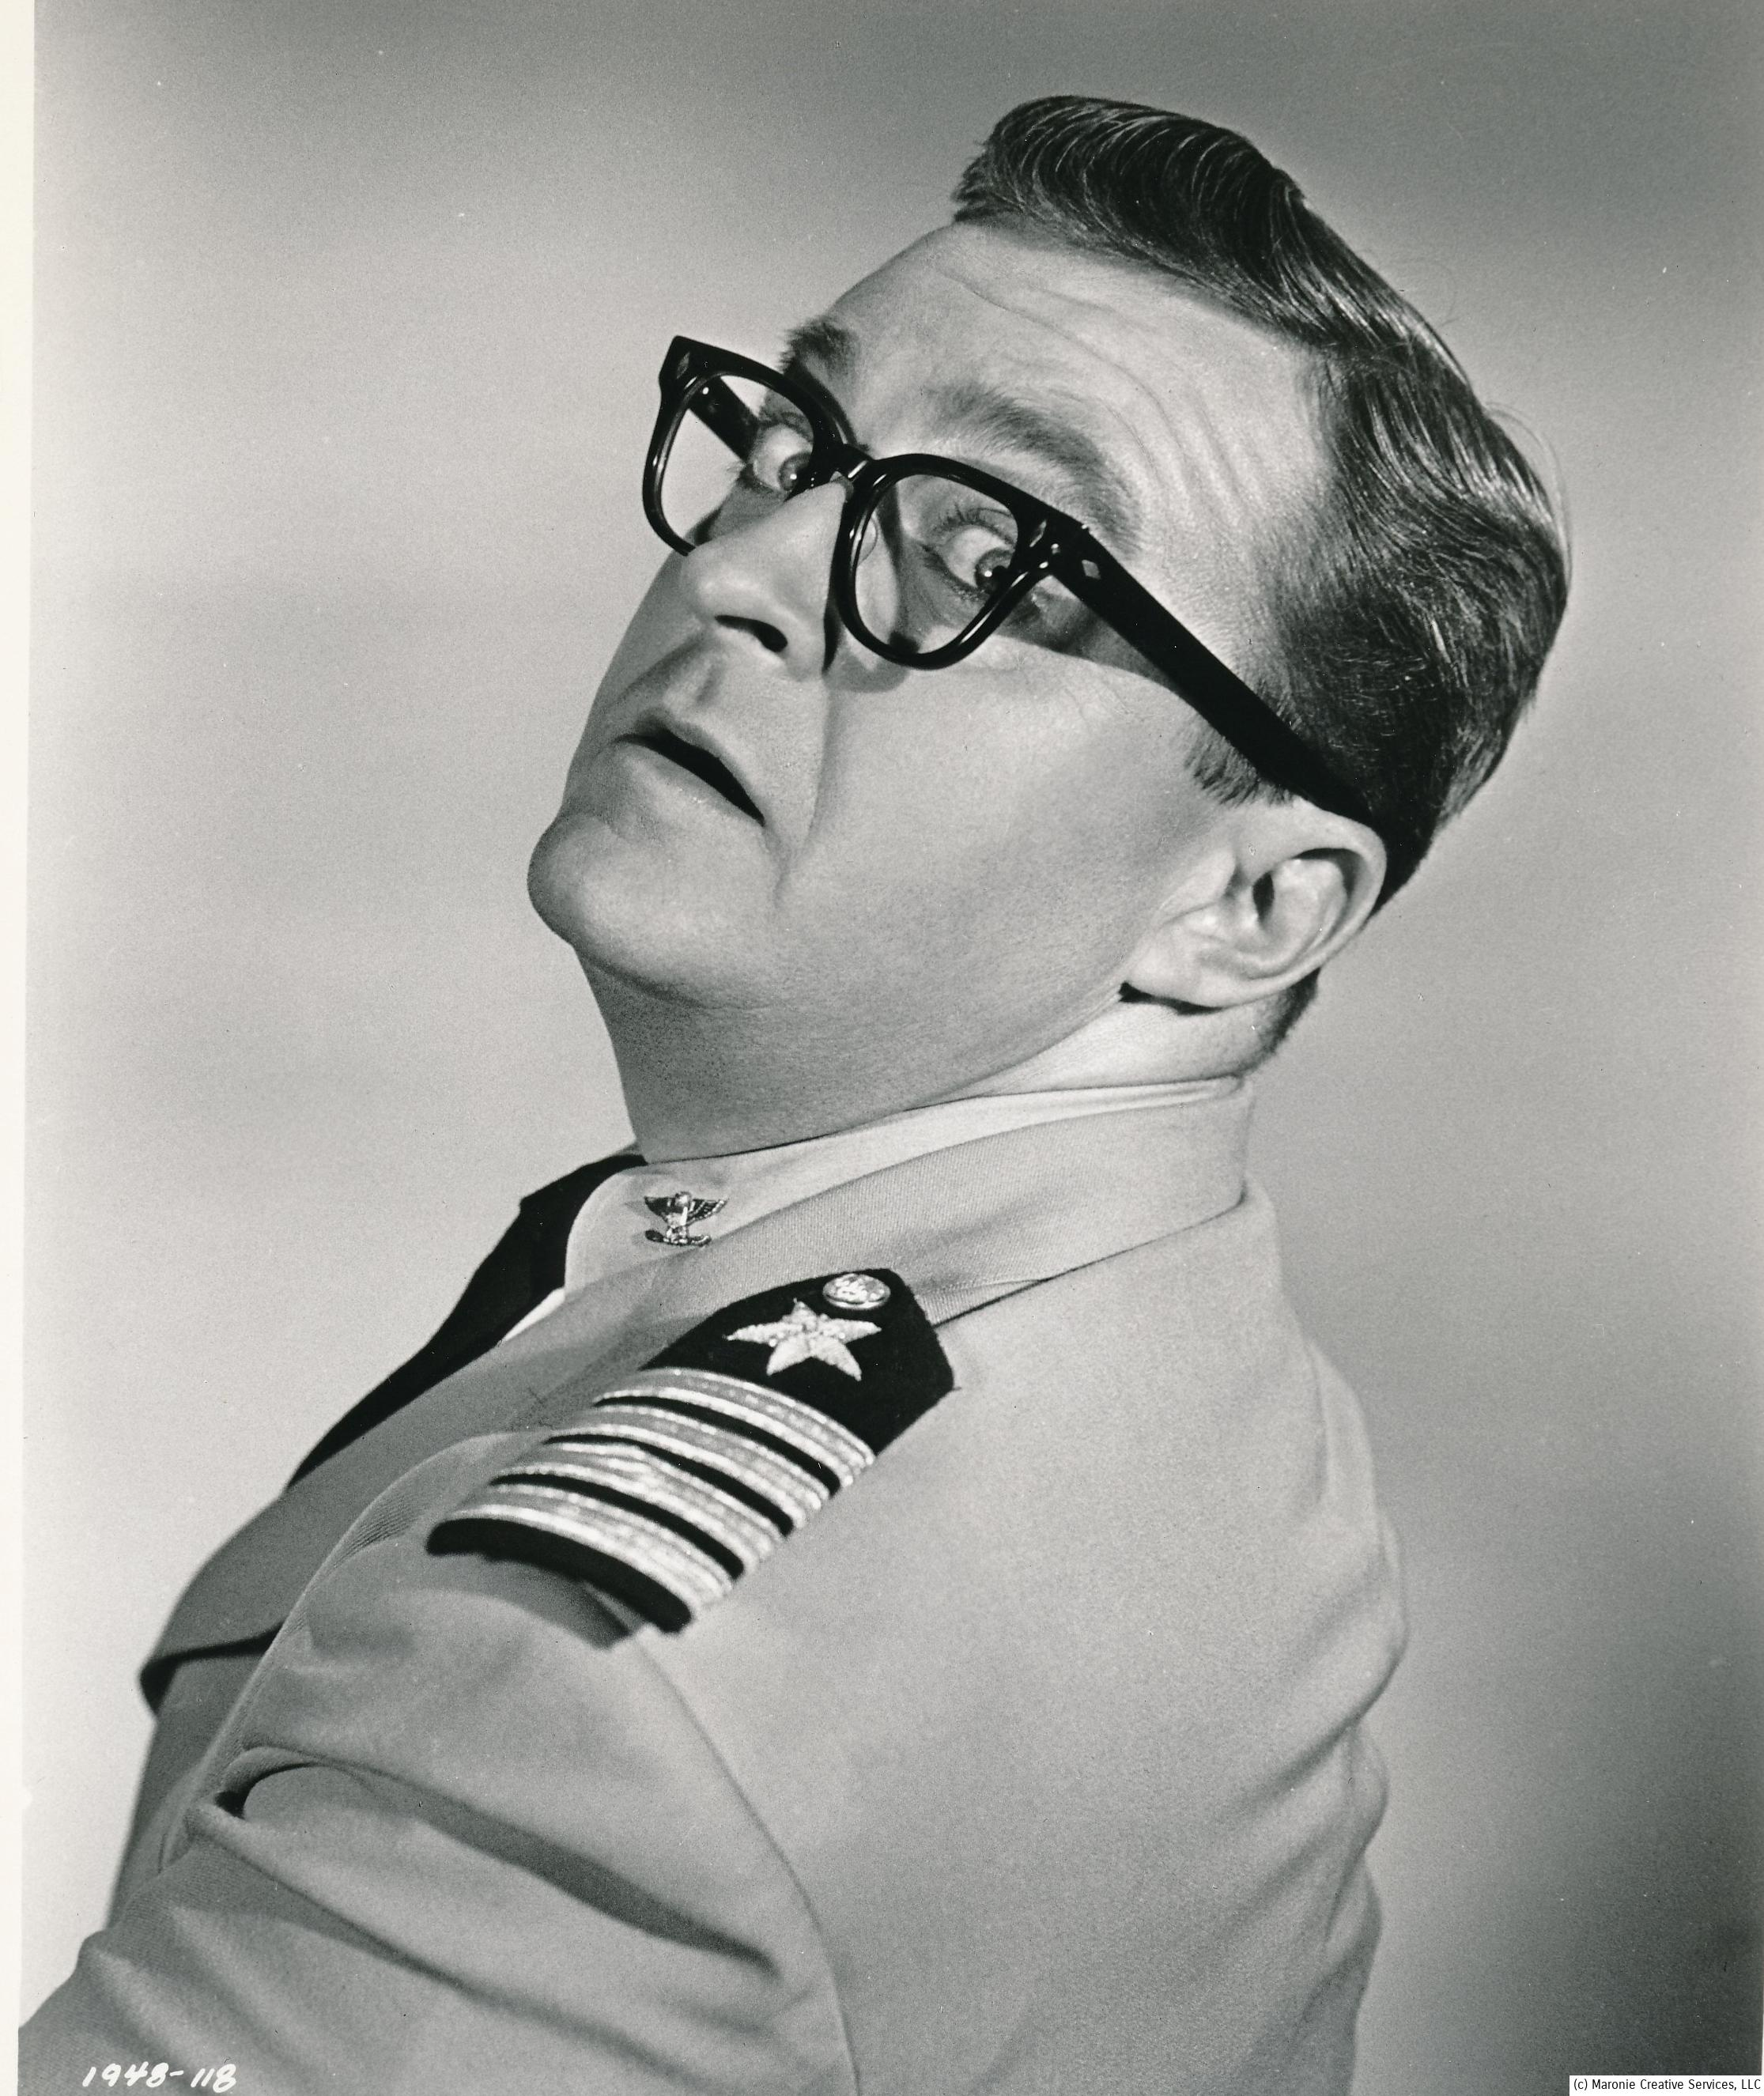 Joe Flynn played the iconic Captain Wallace Binghamton in the McHale's Navy TV series of the early 1960s. The role made him an international star. He was one of the last of movie's great character performers, but managed to step right into a full career of TV work. He was truly one of a kind!